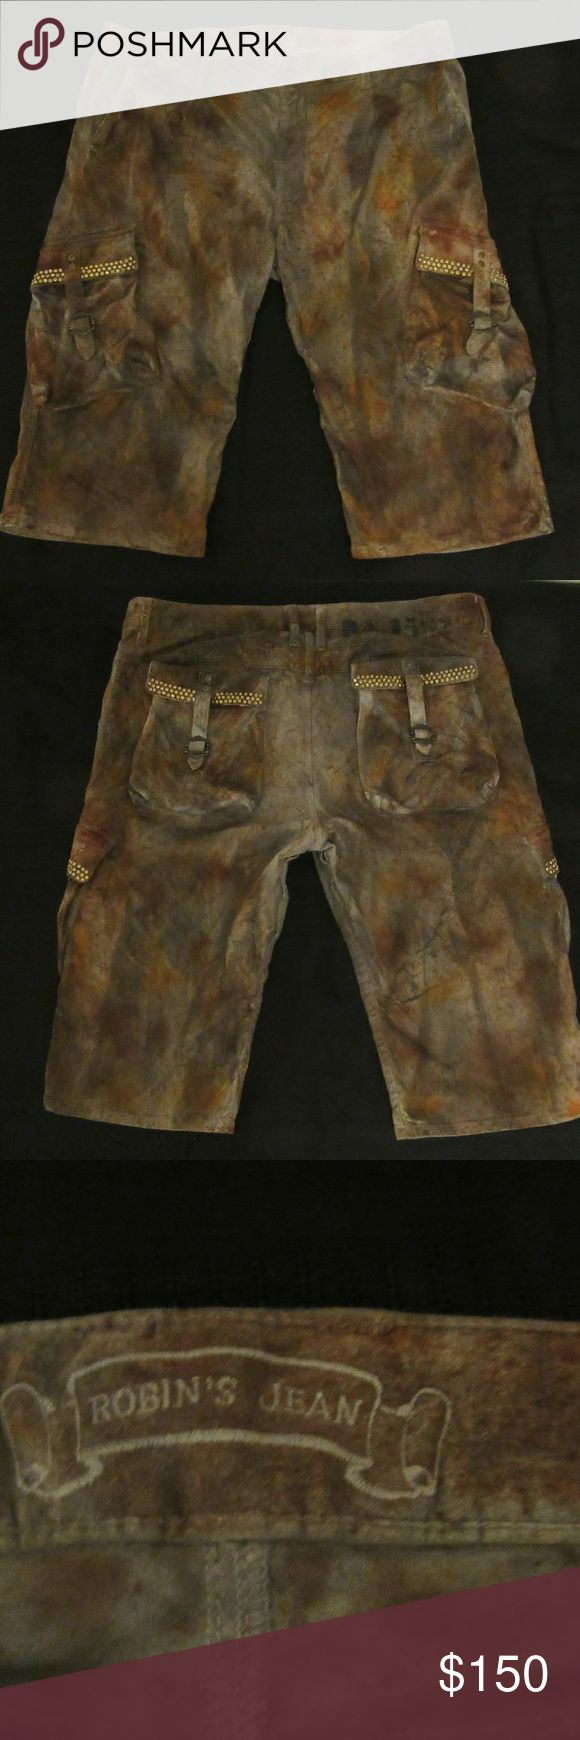 mens robins jeans predator acid wash shorts sz 40 excellent shape ?gently used  tag says 38 but measures to 40?  16inches length  mens robins jeans predator acid wash shorts?  ? Shorts Cargo